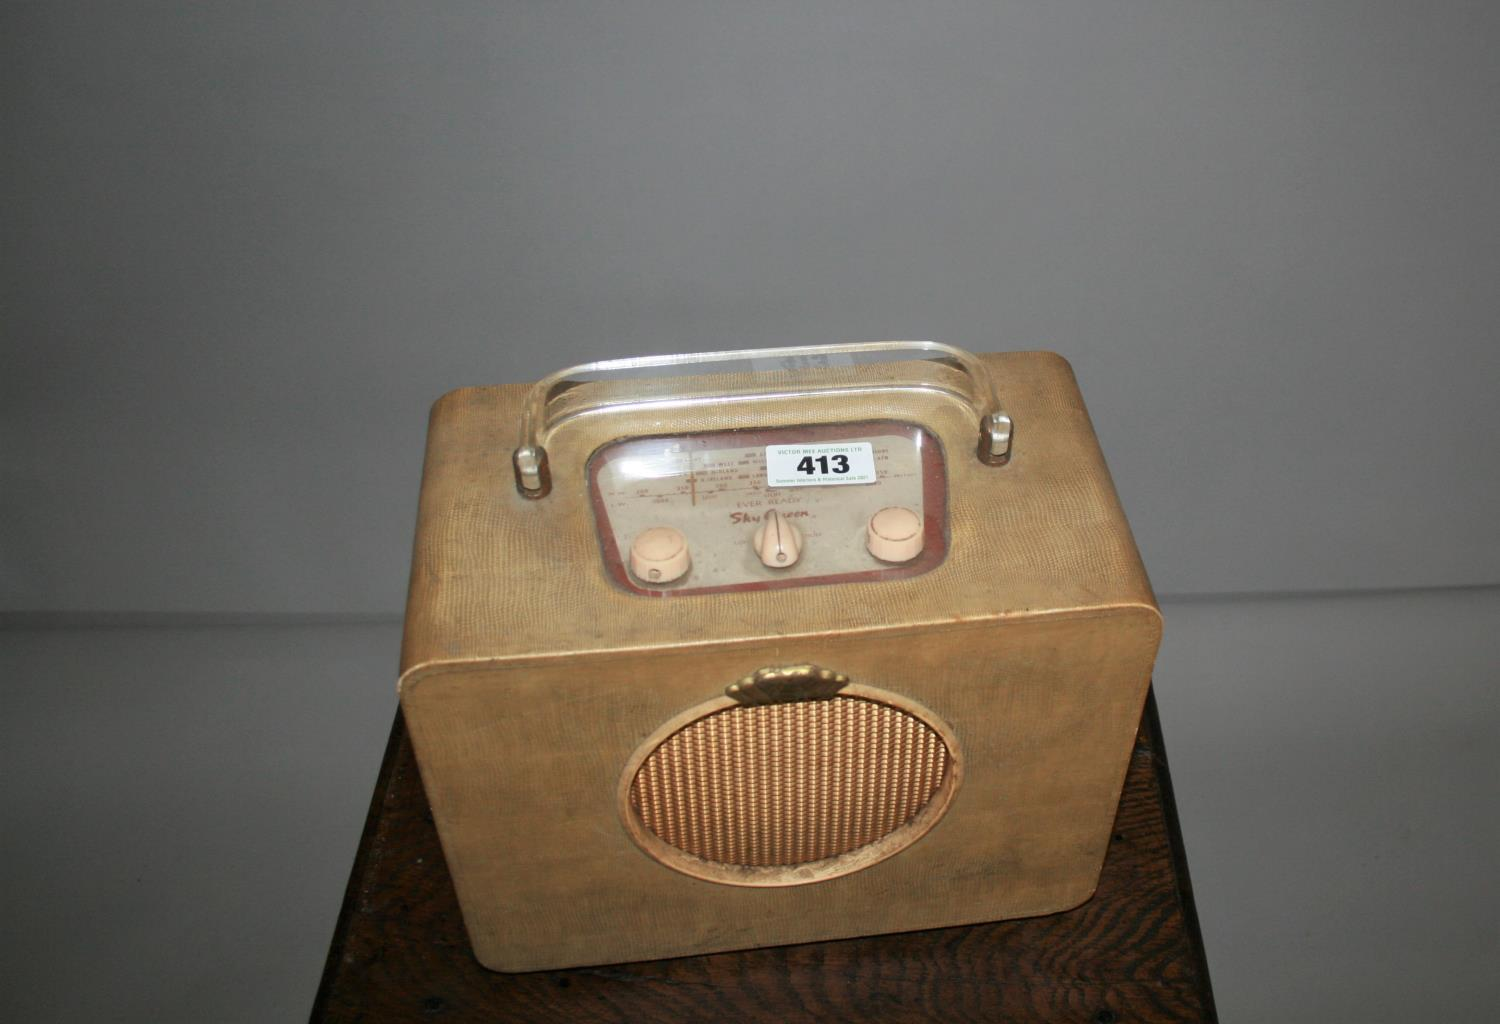 Cool vintage Ever Ready radio with perplex carrying handle. 30W x 30H x 18D